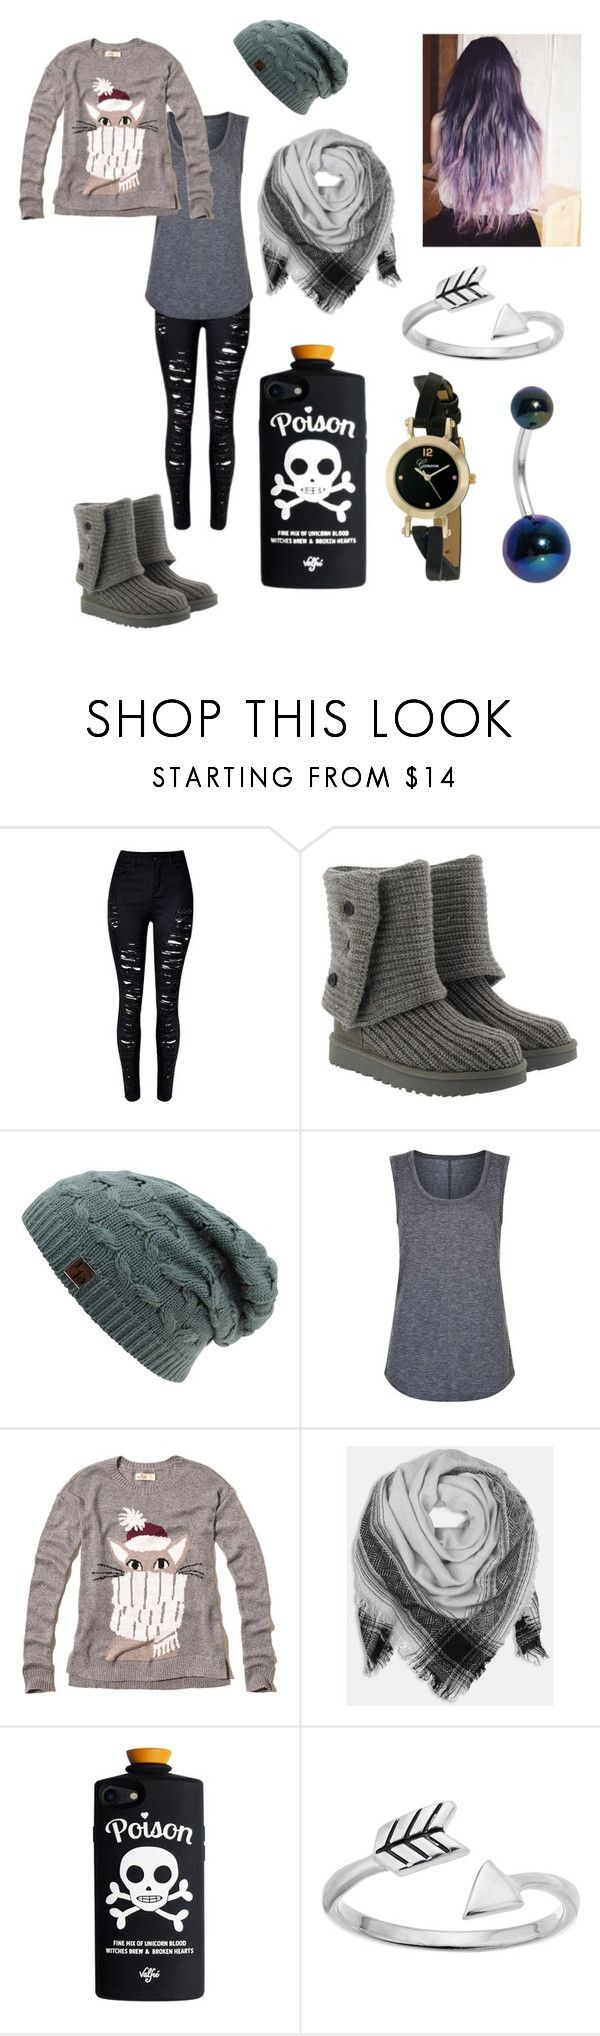 """Untitled #197"" by bunnycorn ❤ liked on Polyvore featuring UGG, Elie Tahari, Hollister Co., BeckSöndergaard, Primrose and Geneva"